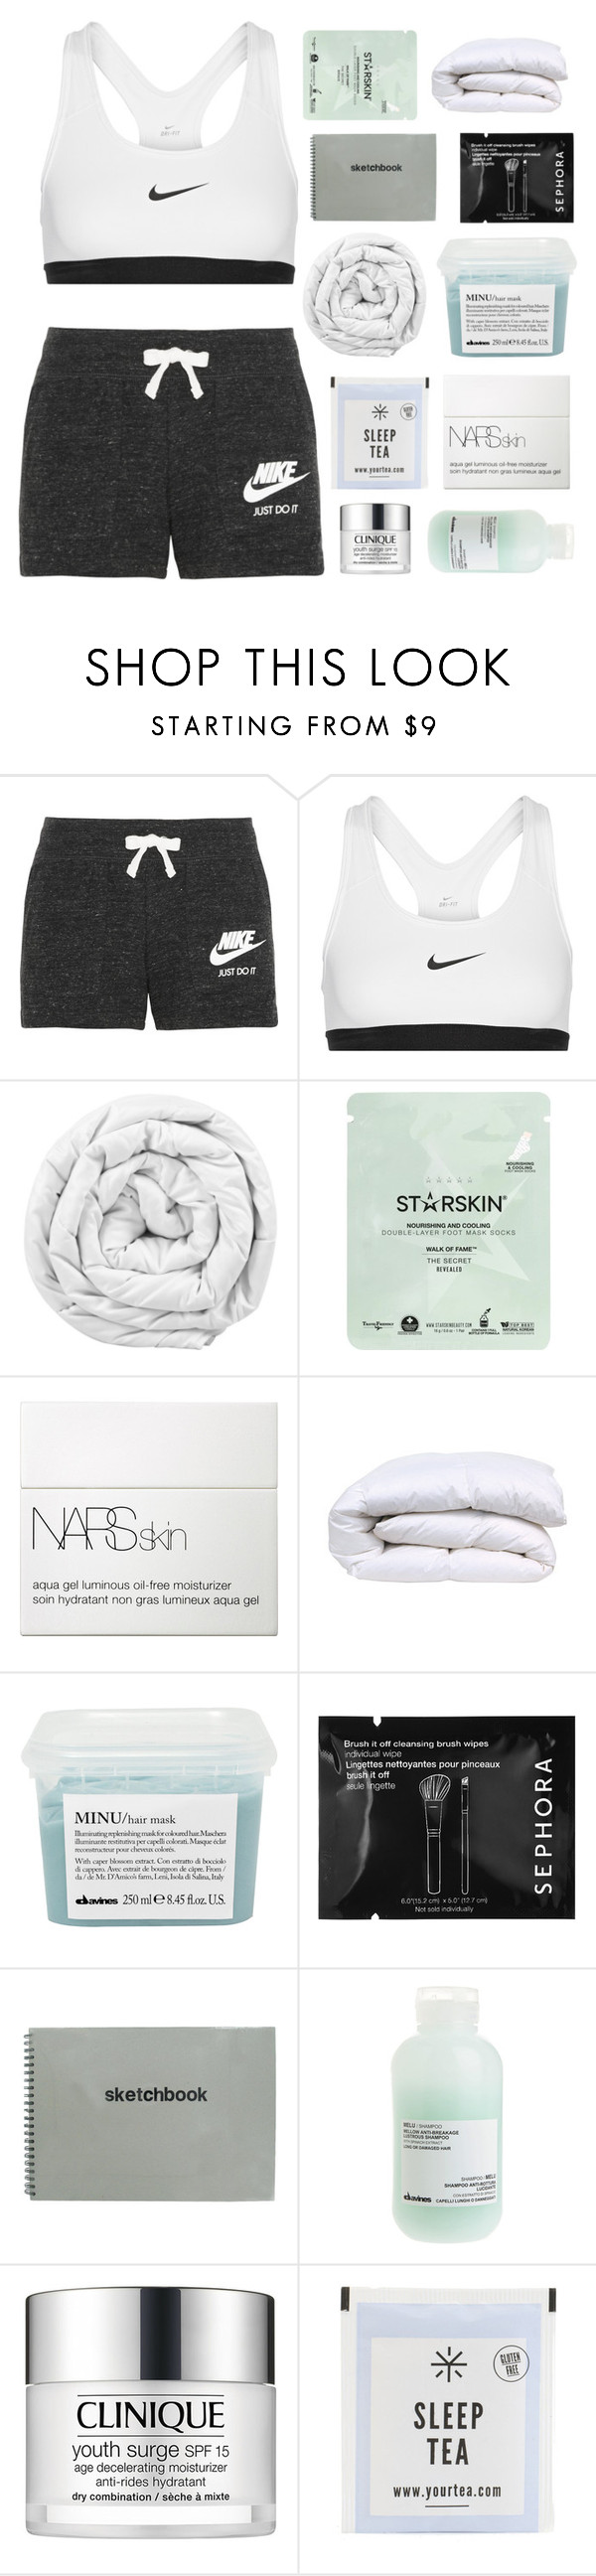 """follow tiandsamscorner (rtd)"" by glowed ❤ liked on Polyvore featuring NIKE, Brinkhaus, Starskin, NARS Cosmetics, Davines, Sephora Collection and Clinique"